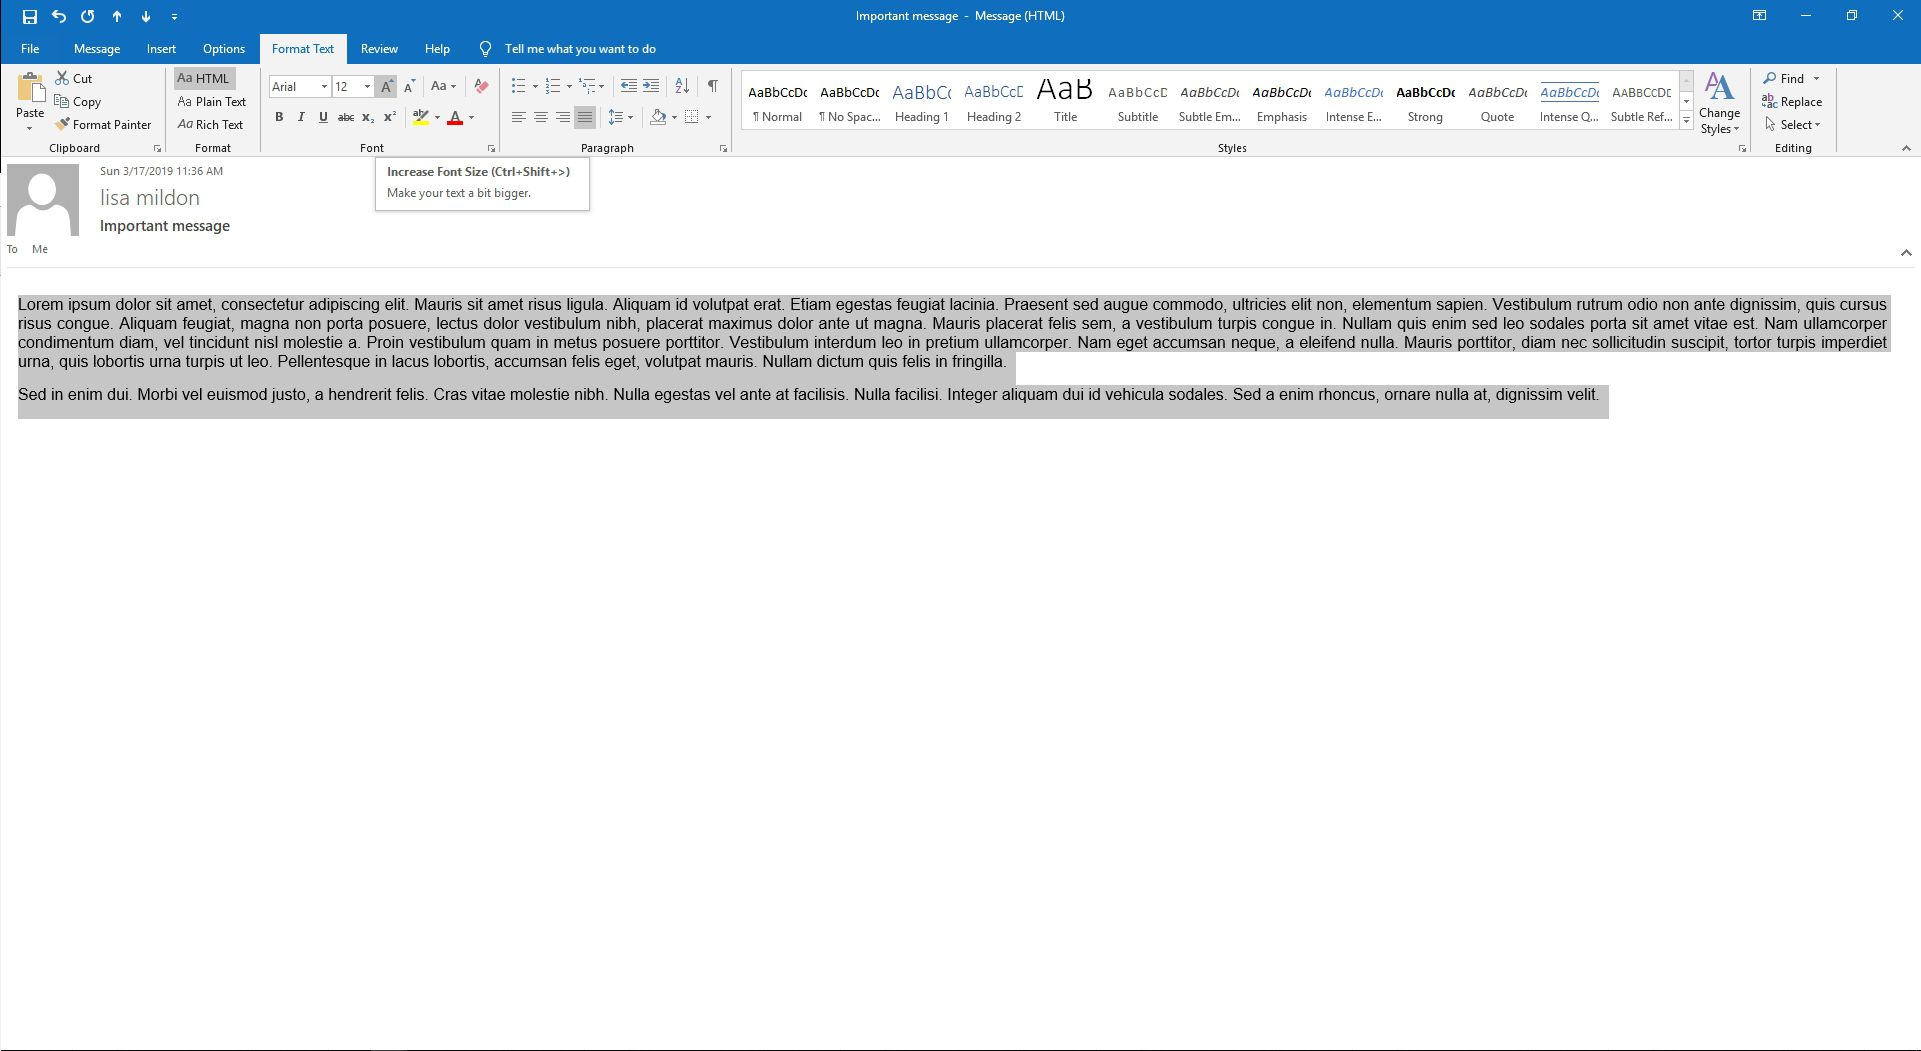 How to Print an Outlook Email in a Different Font Size